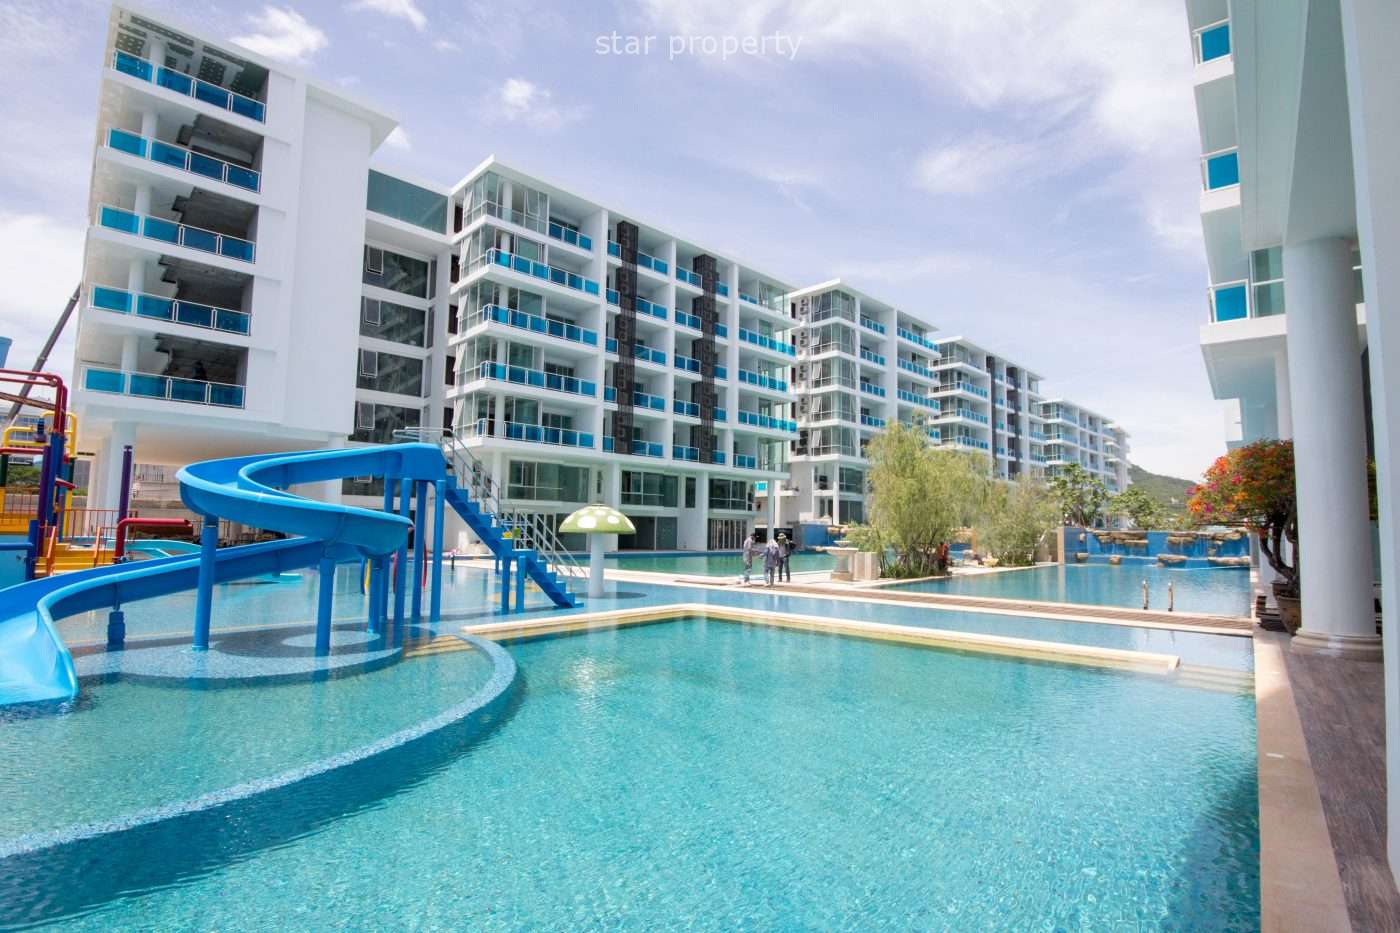 Pool Access Unit at My Resort Condo for Sale